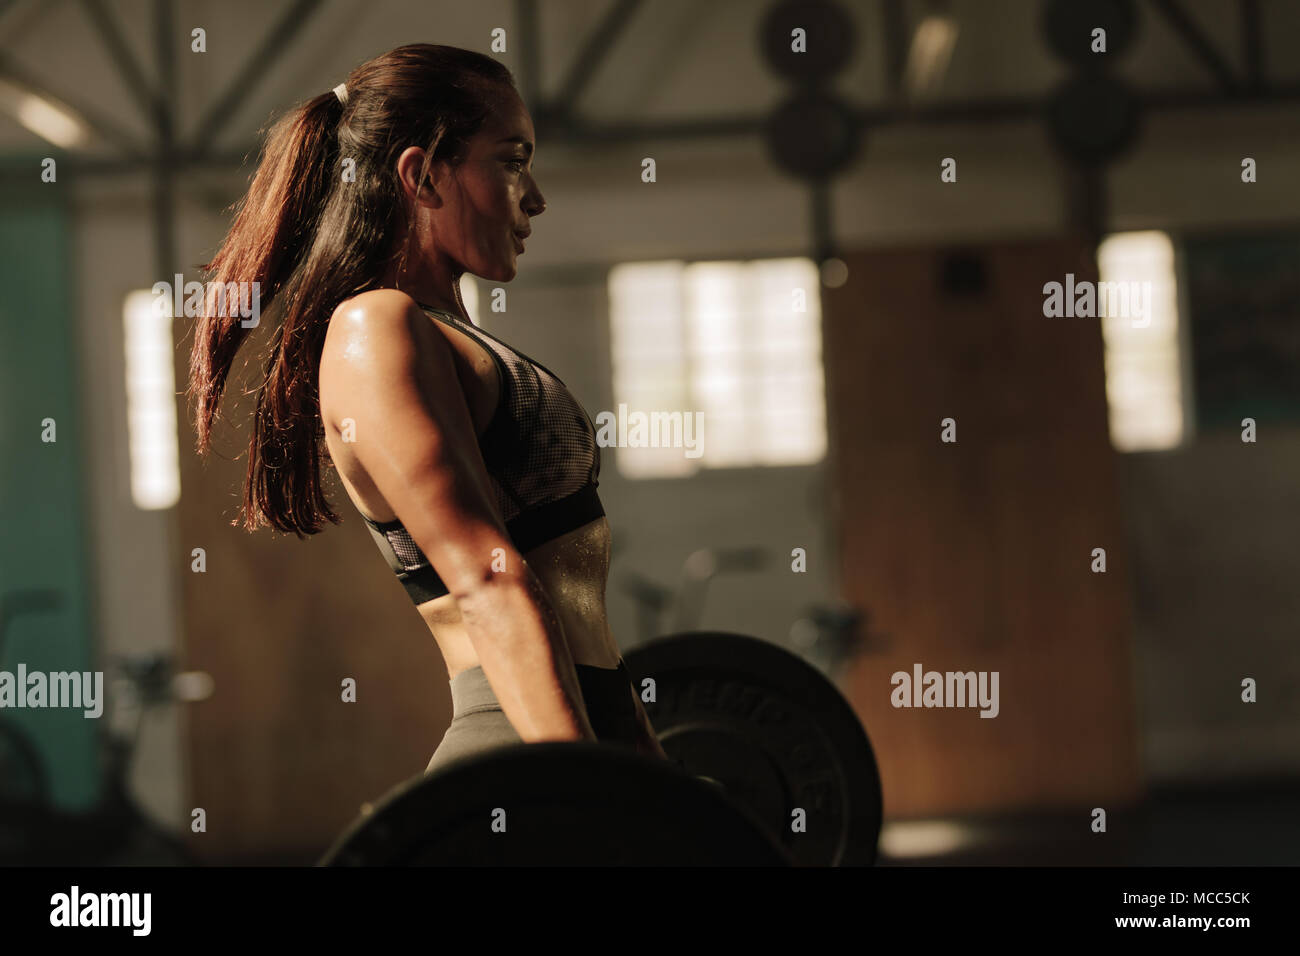 Physically fit woman lifting heavy weights. Fitness female doing heavy weight workout at gym. - Stock Image